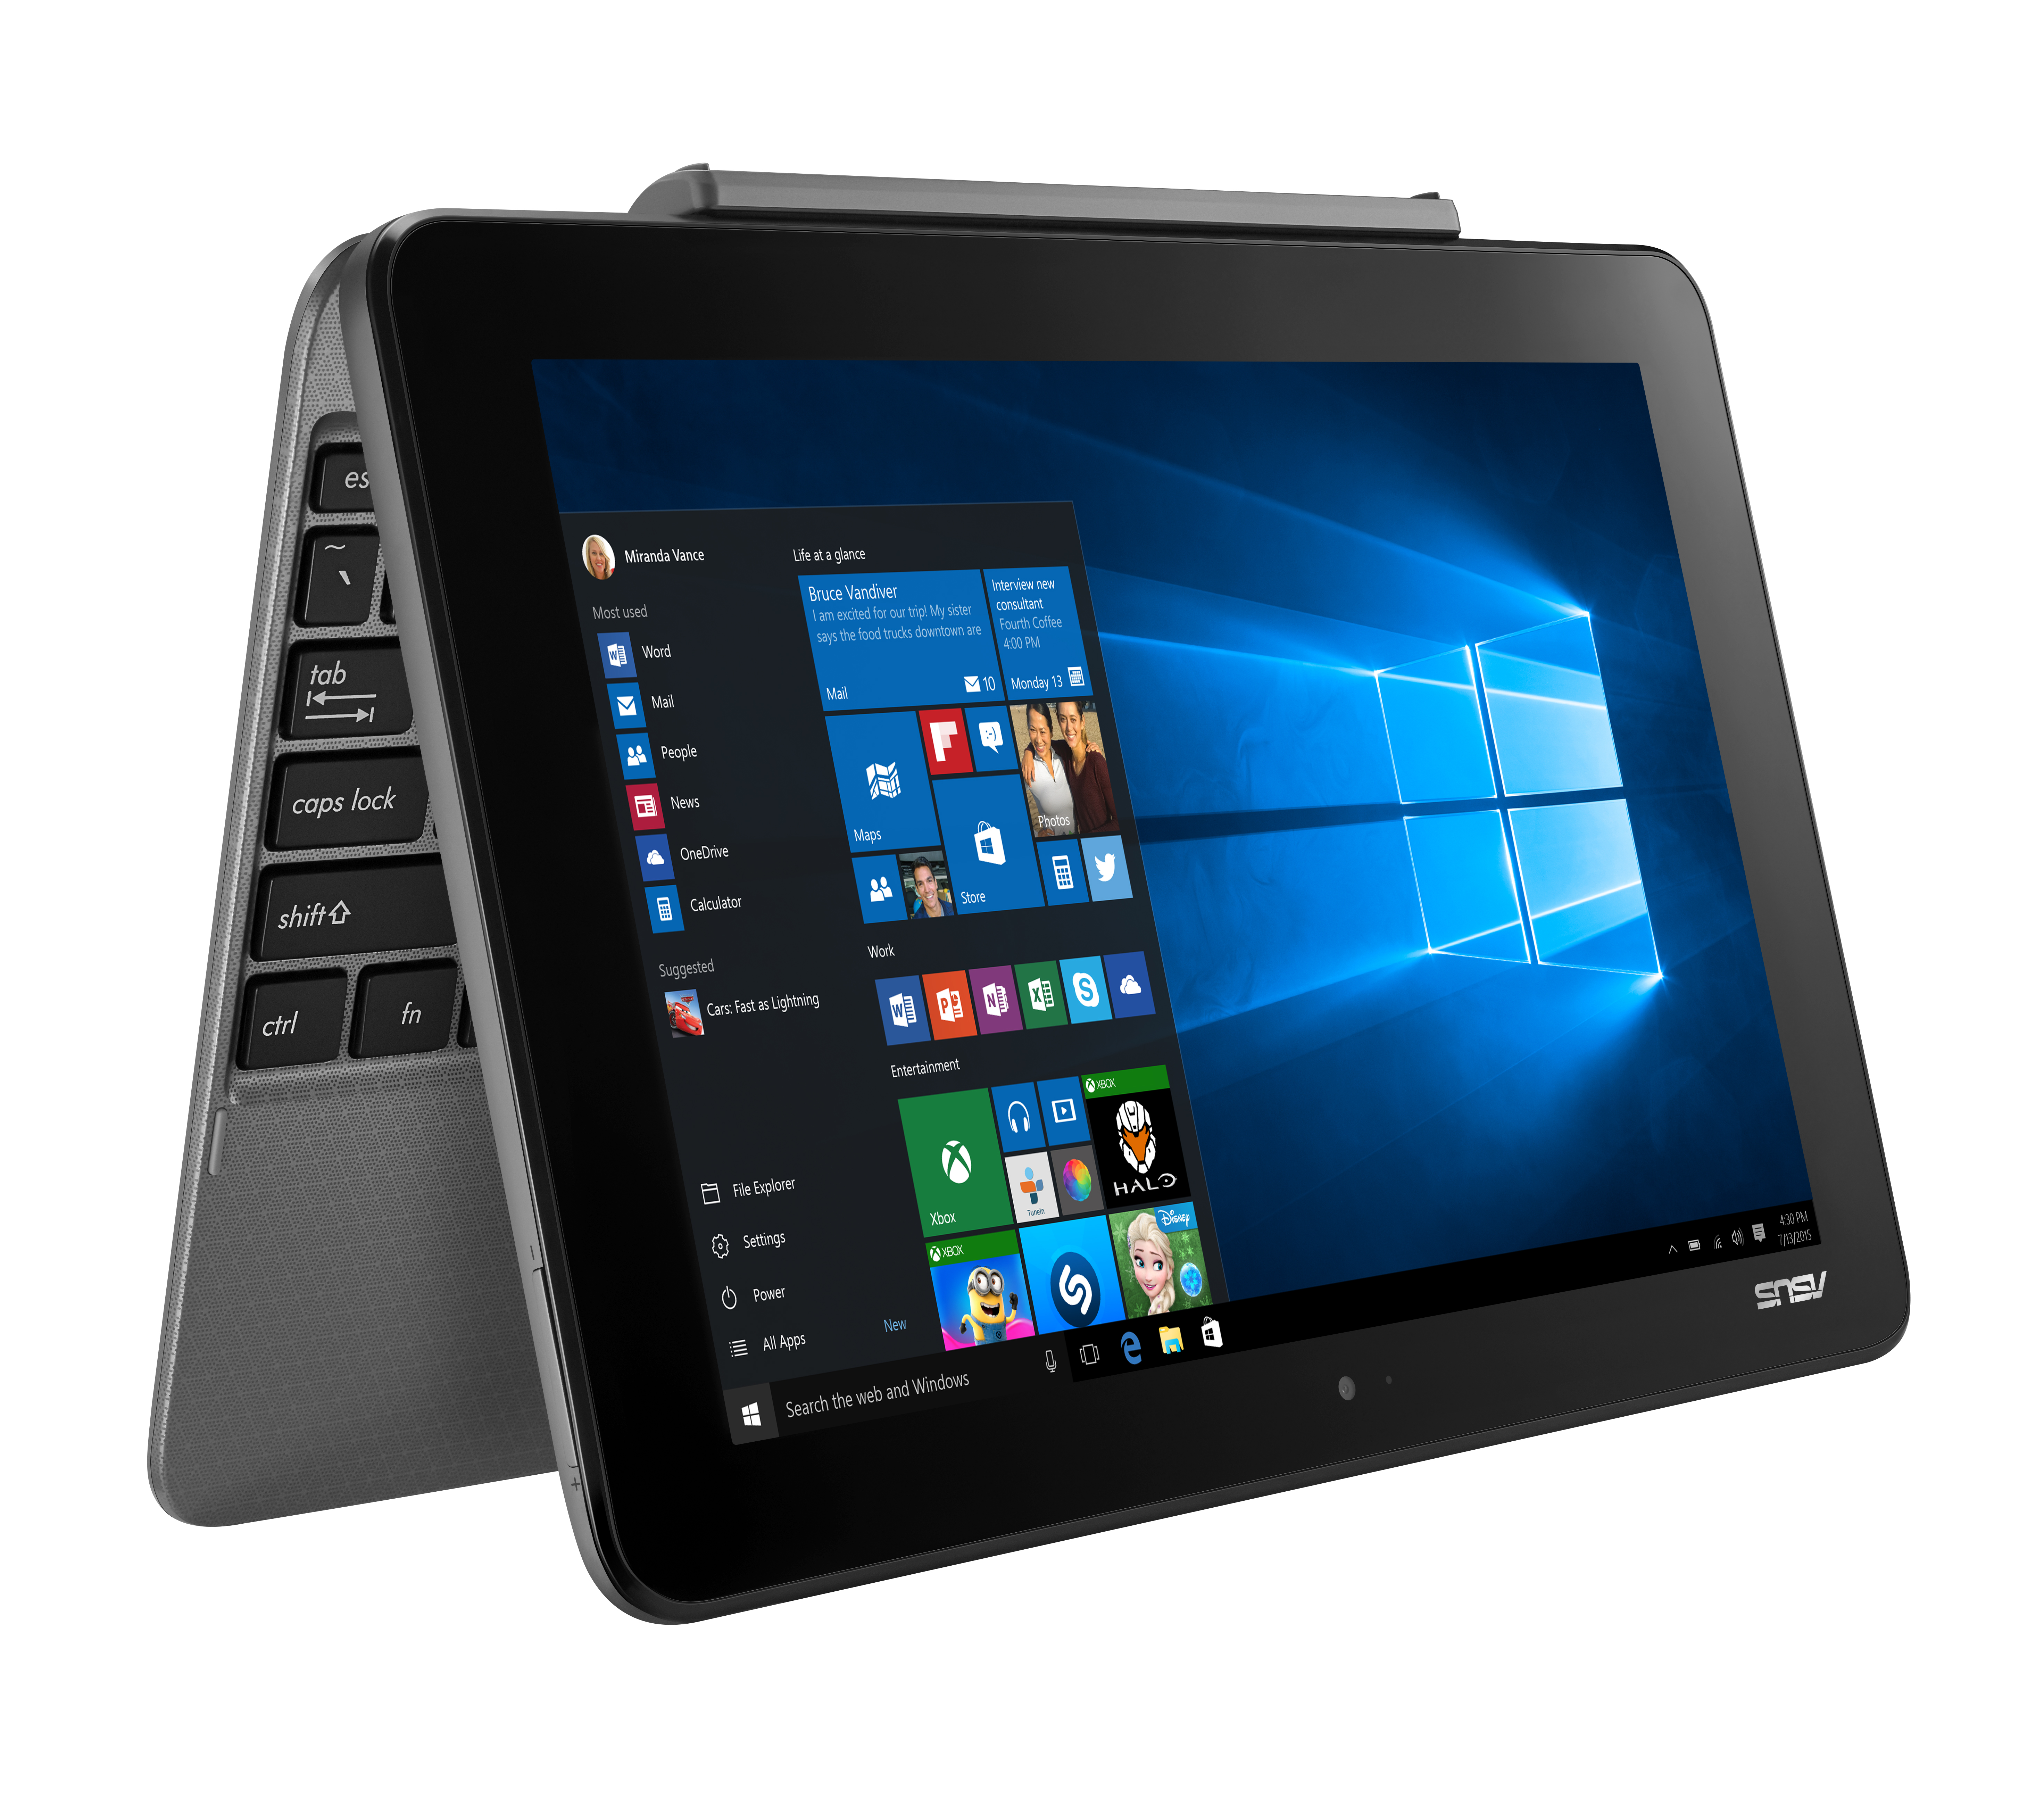 Portatil-Convertible-2-en-1-ASUS-Transformer-Book-T101HA-GR030T-10-1-039-039